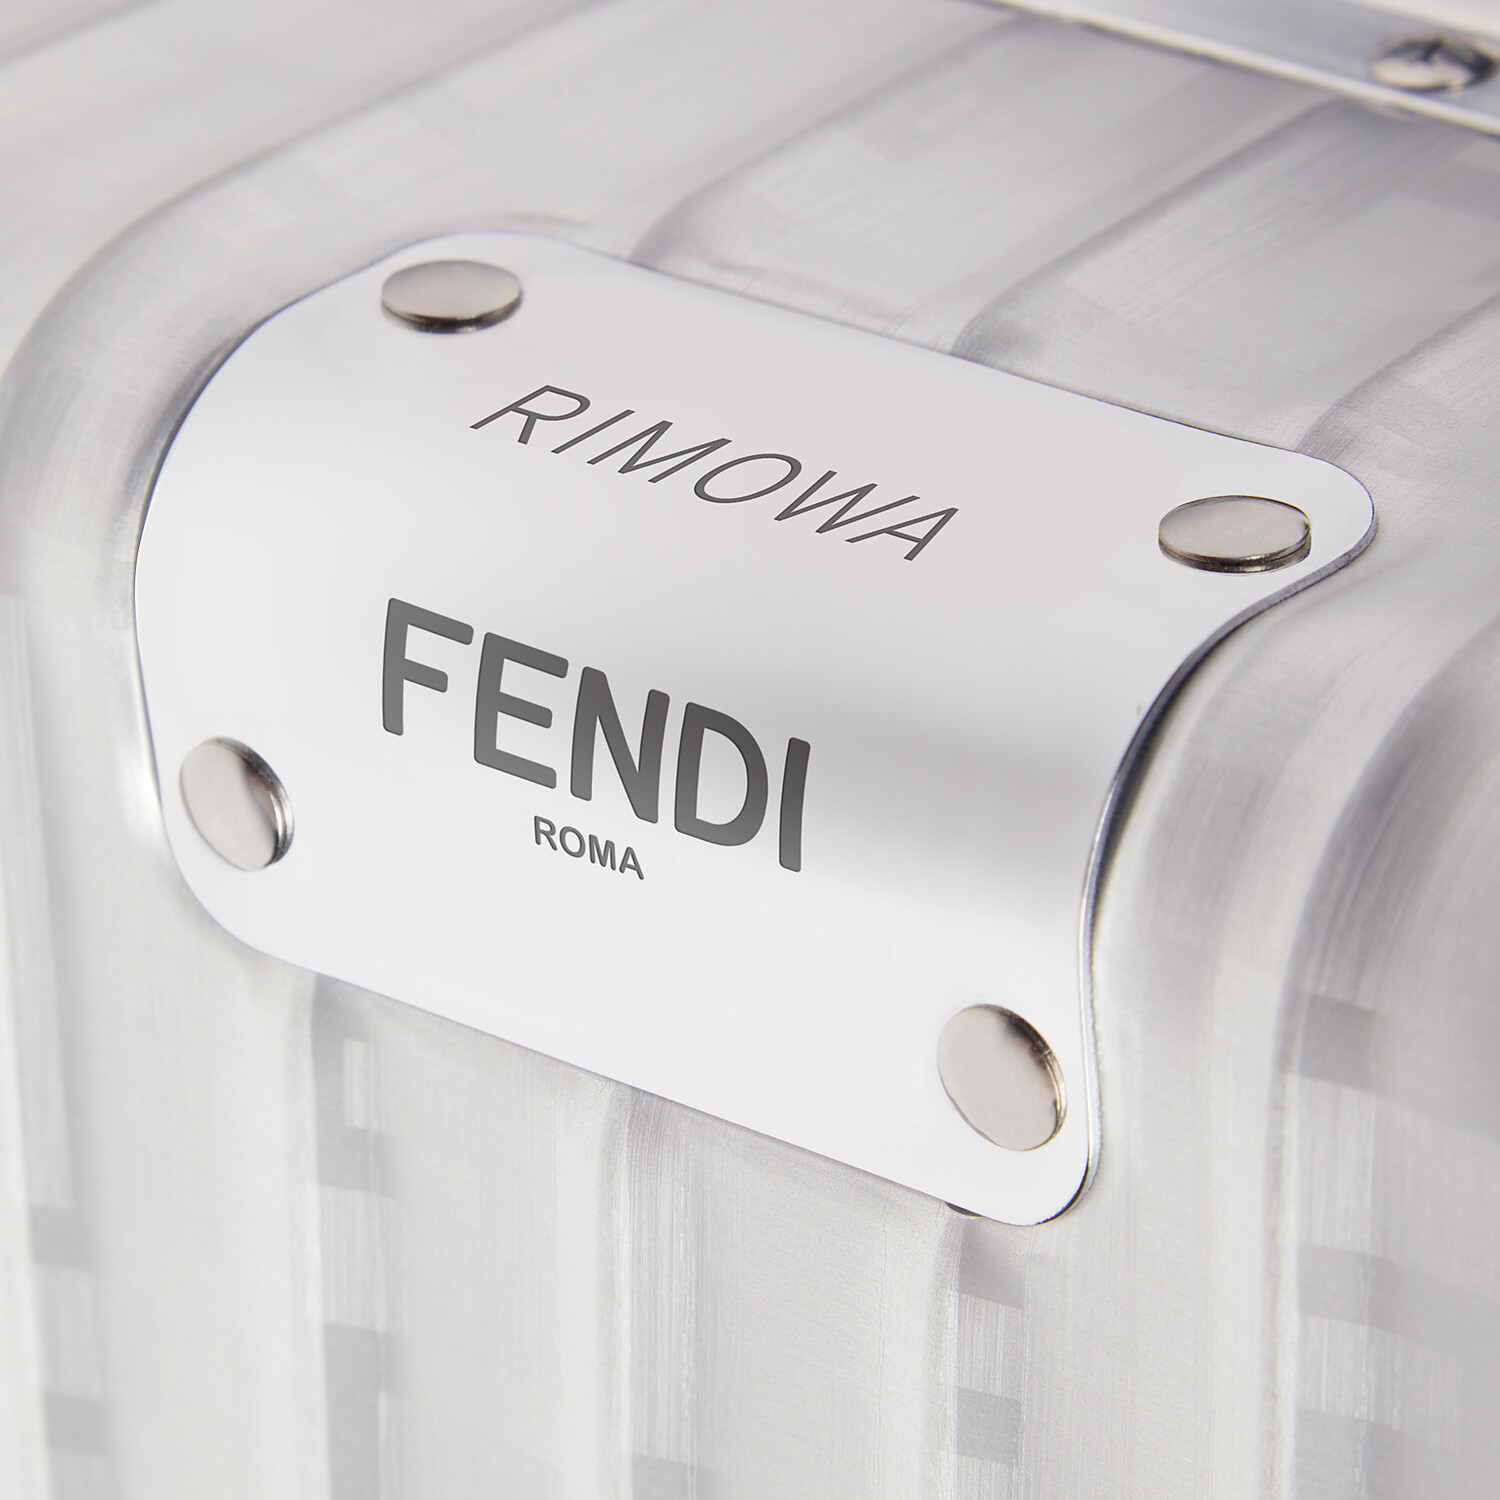 FENDI CABIN SIZE TROLLEY - Aluminum trolley case with leather details - view 4 detail